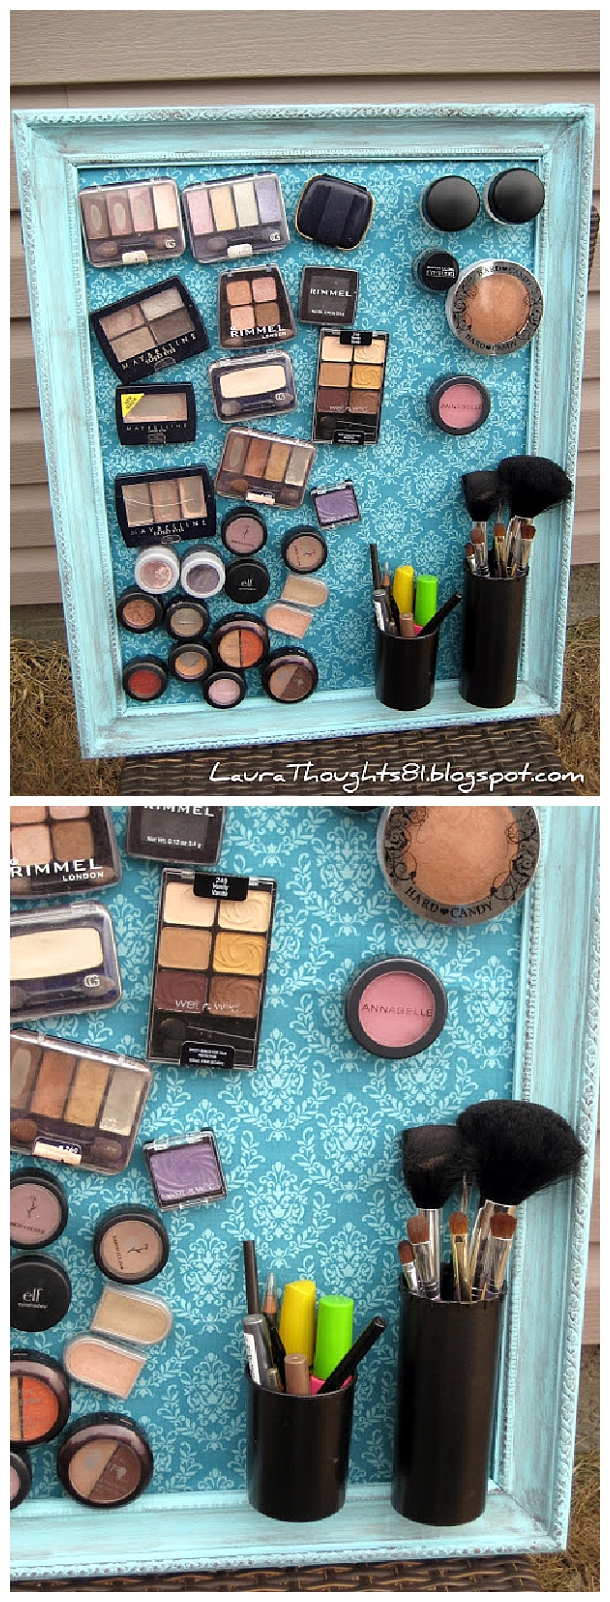 DIY Bathroom Organizer Ideas - DIY Magnetic Makeup and Beauty Tools Decorative Space Saving Organization Board via Laura Thoughts #bathroomorganization #bathroomideas #bathroomhacks #bathroomtips #organizethebathroom